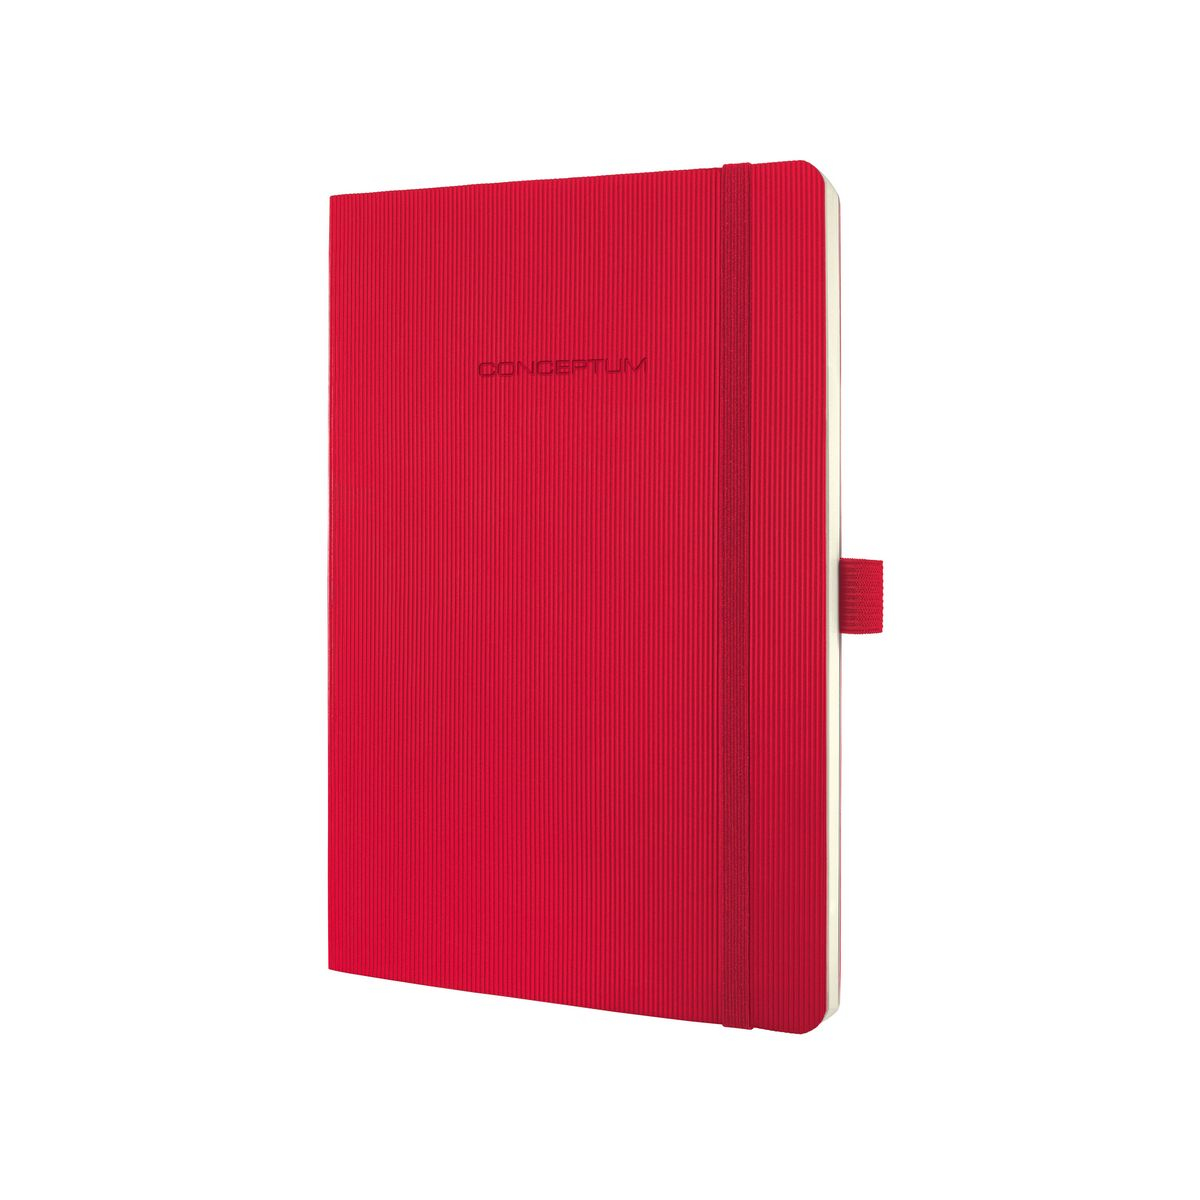 Sigel Conceptum A5 194sheets Red writing notebook